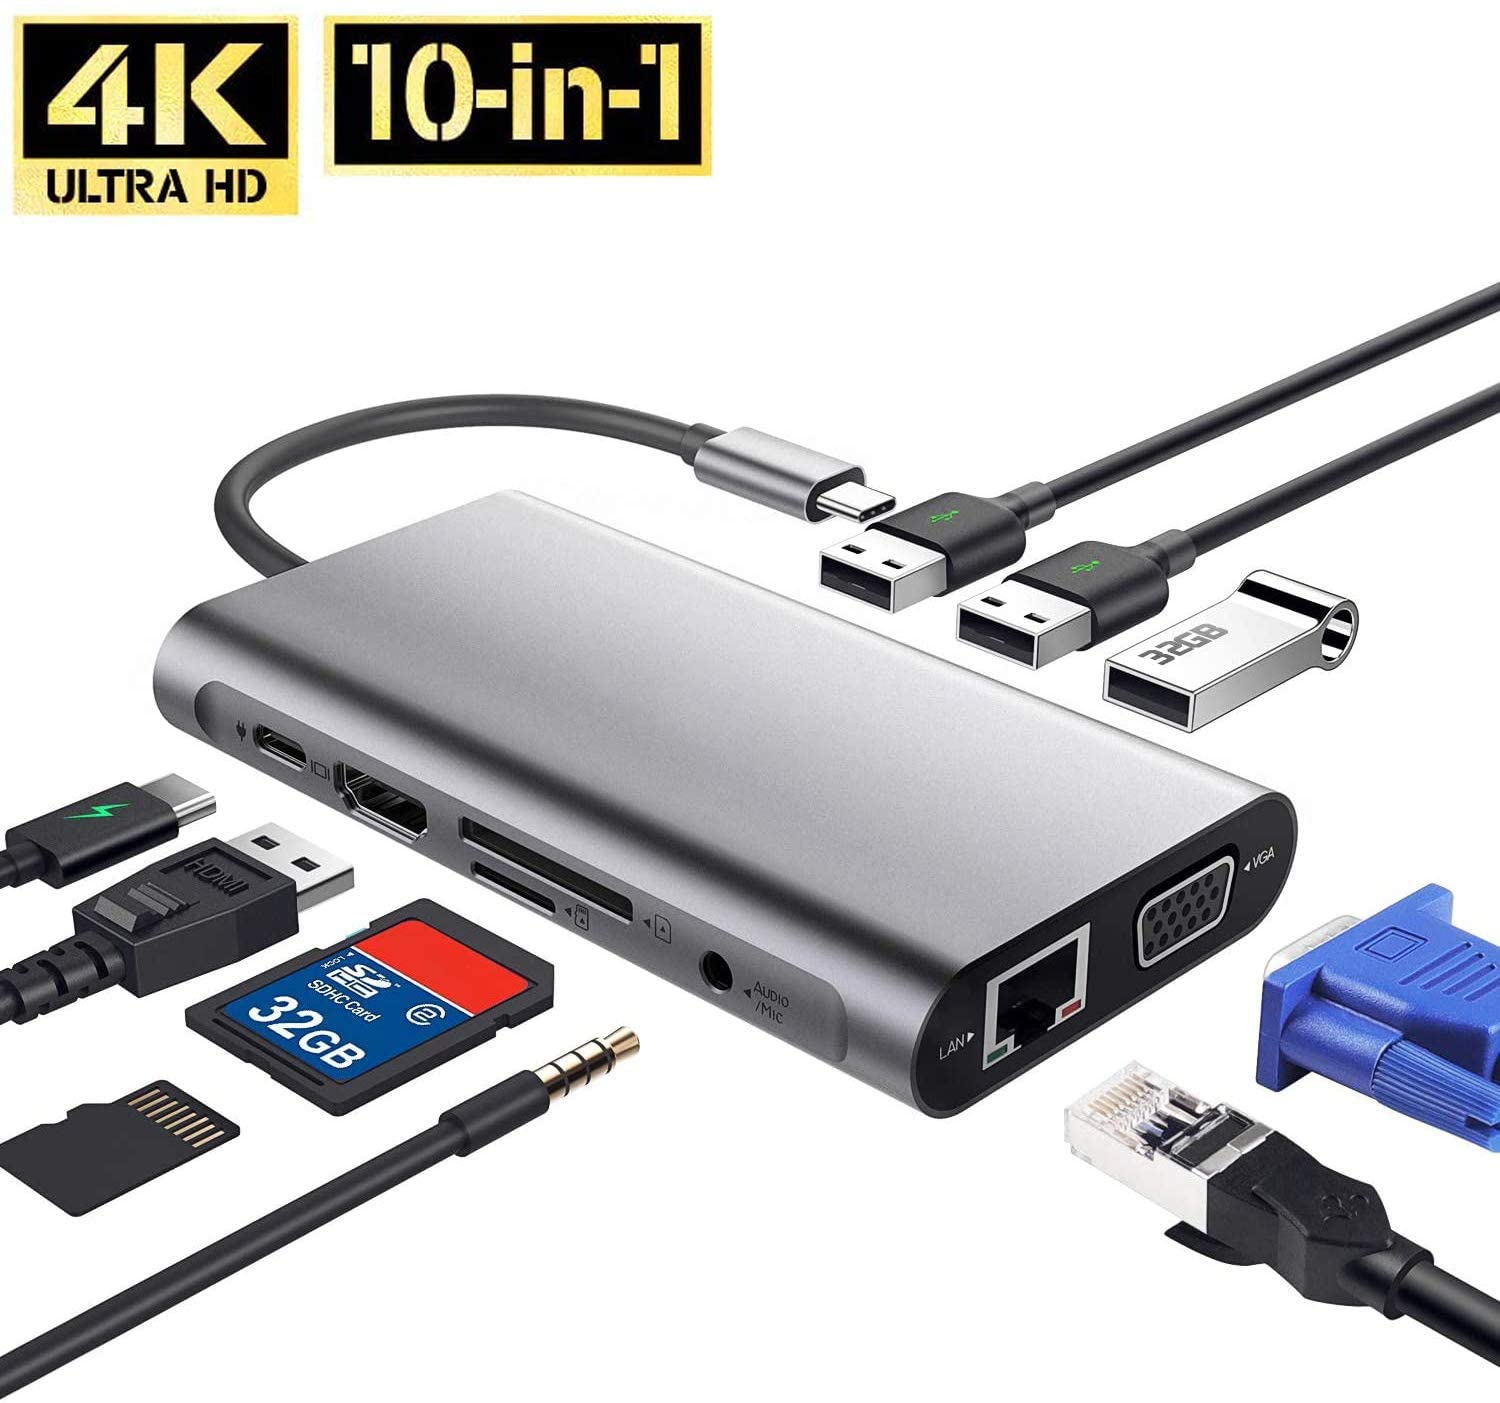 USB C Hub Laptop Docking Station, Senli 10-in-1 Type C Hub Adapter Dual Monitor Docking Station with 1000M RJ45 Ethernet, 4K HDMI, VGA, USB 3.0 Ports, PD Fast Charge, SD&TF Card Reader, Audio Mic Port